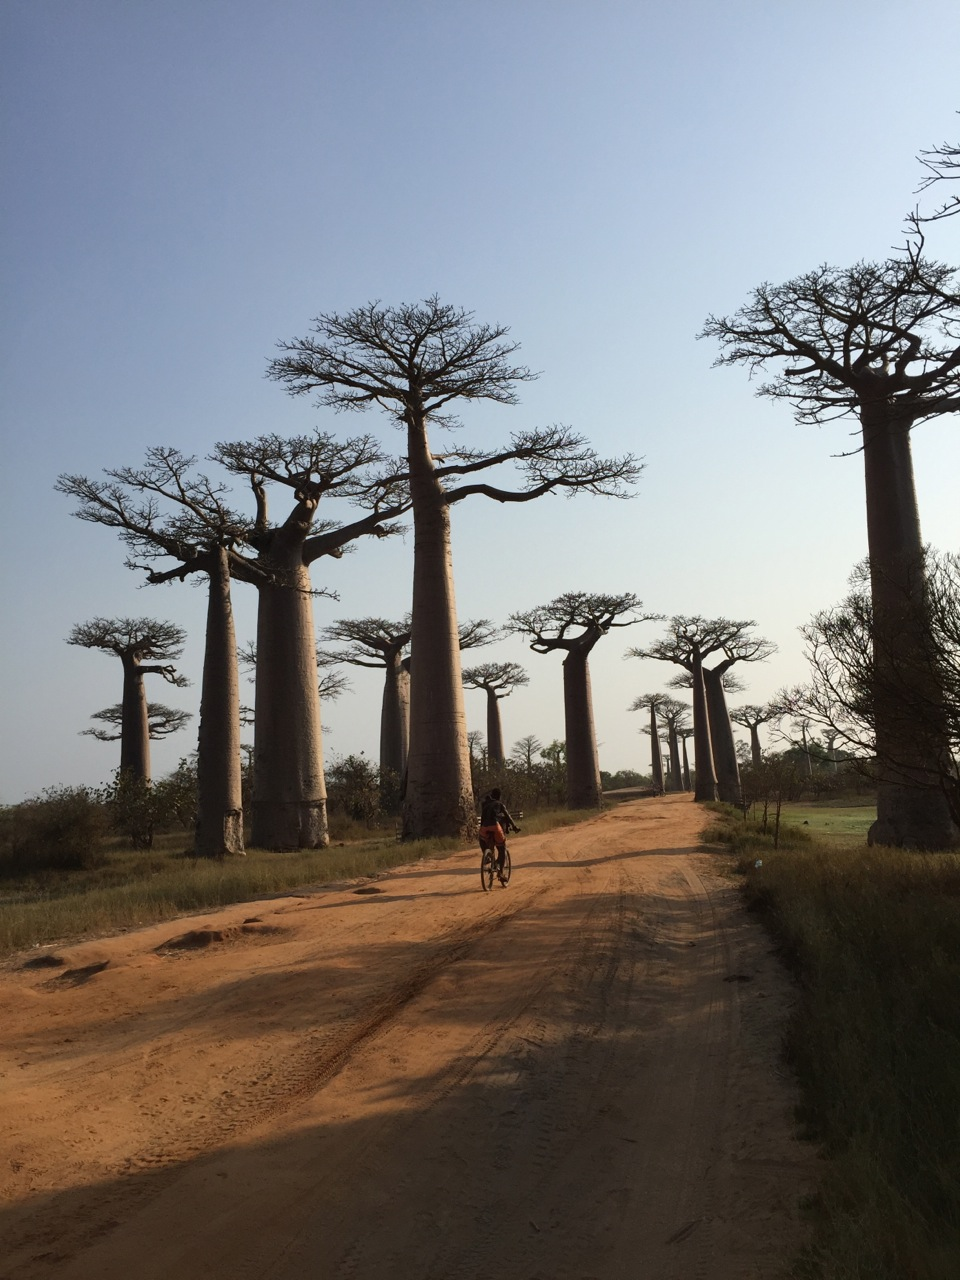 Avenue of the Baobabs in early morning, about 5 km outside of Morondava.